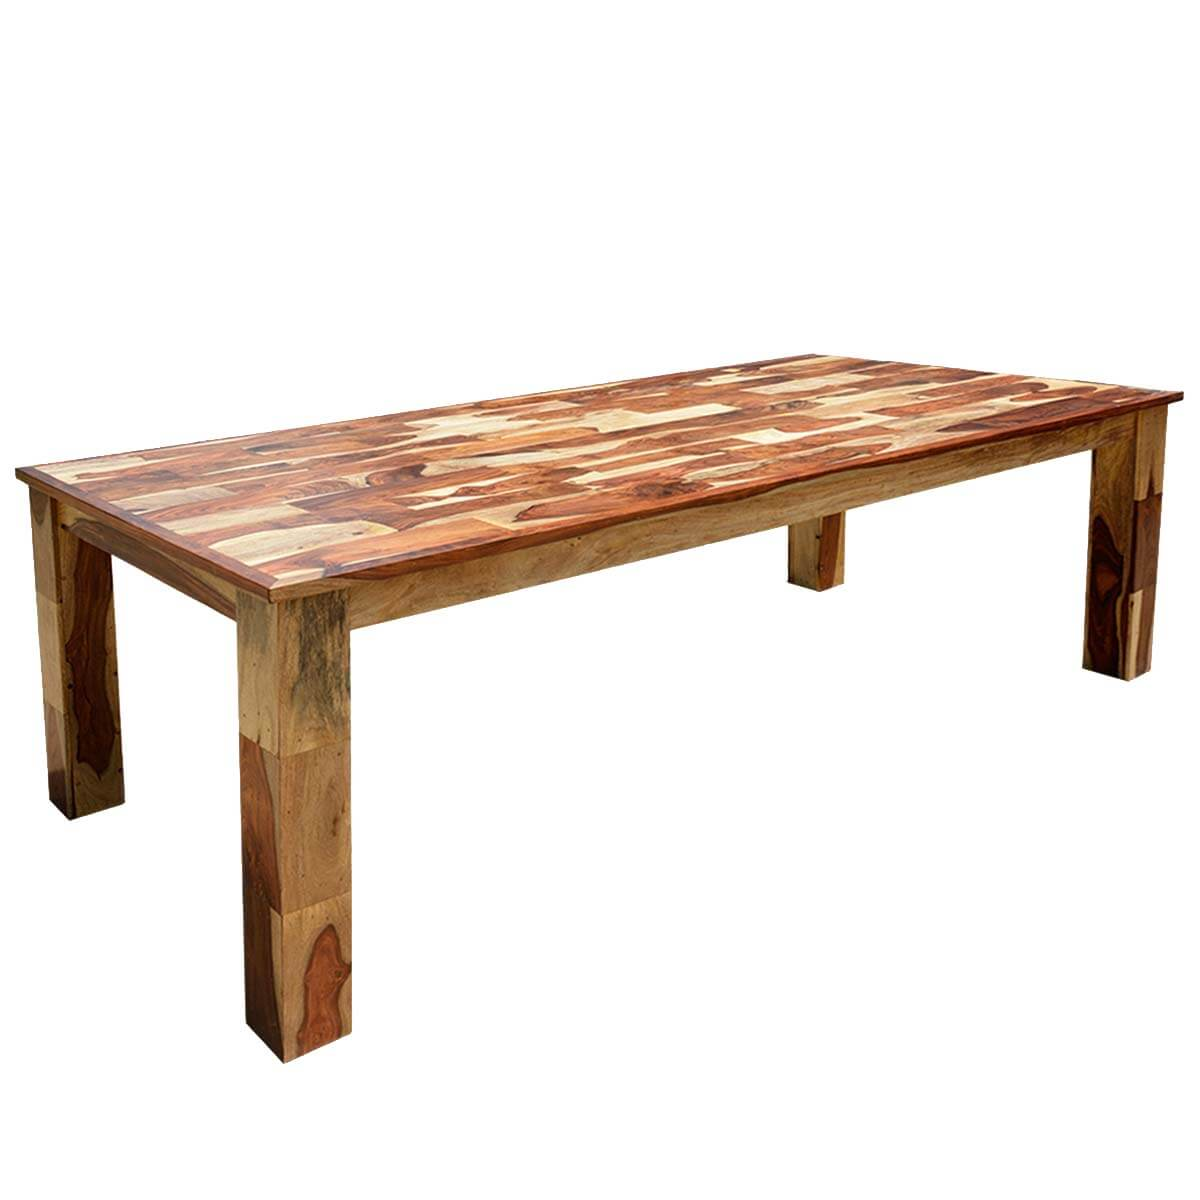 Cariboo rustic solid wood large rectangular dining table Rustic wood dining table